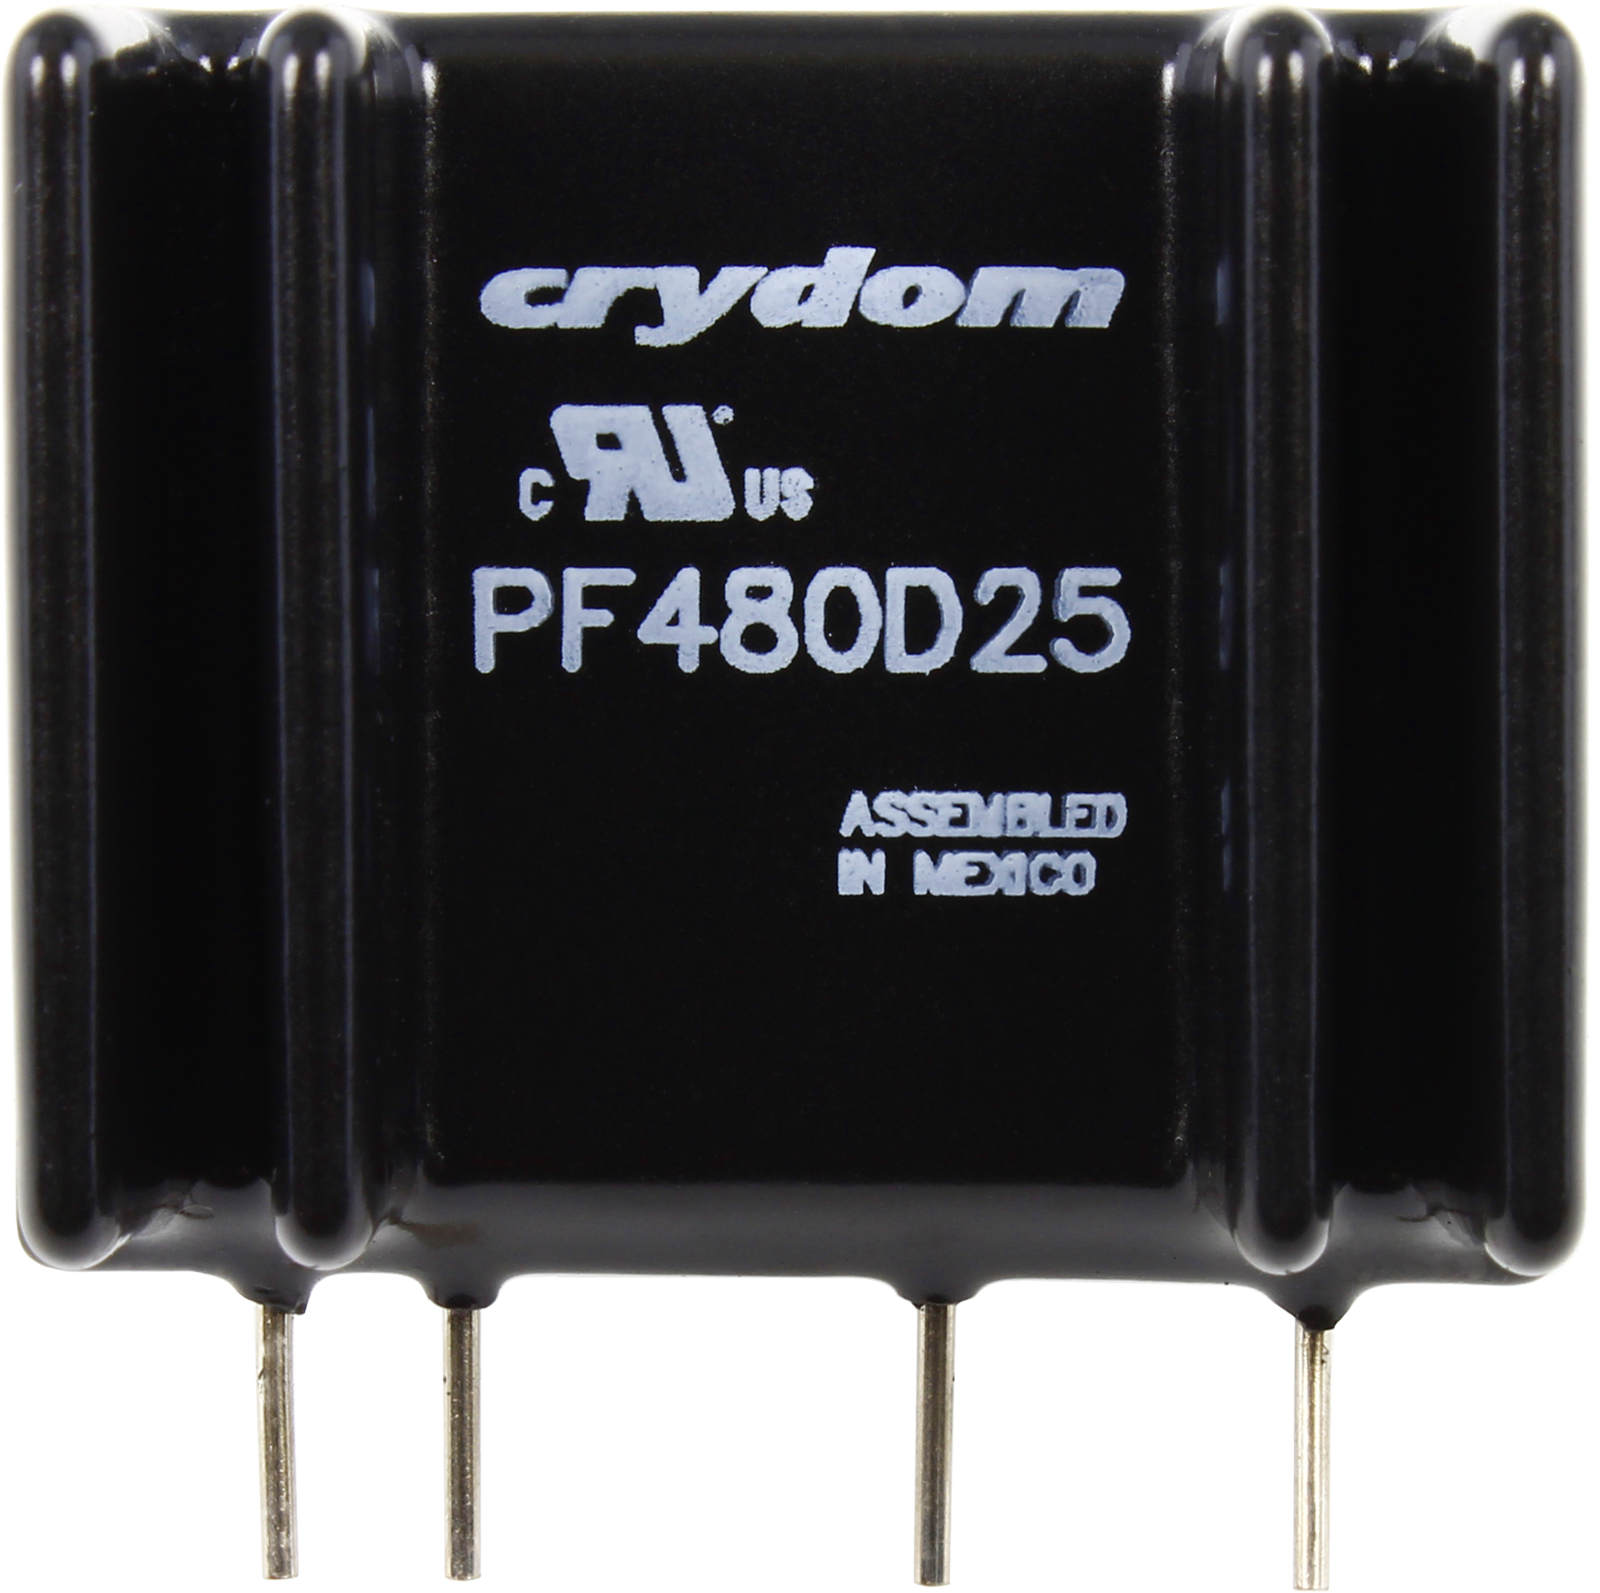 Crydom Pf480d25 25a 480vac Zero Cross Solid State Relay For Solidstaterelay Schematic Please